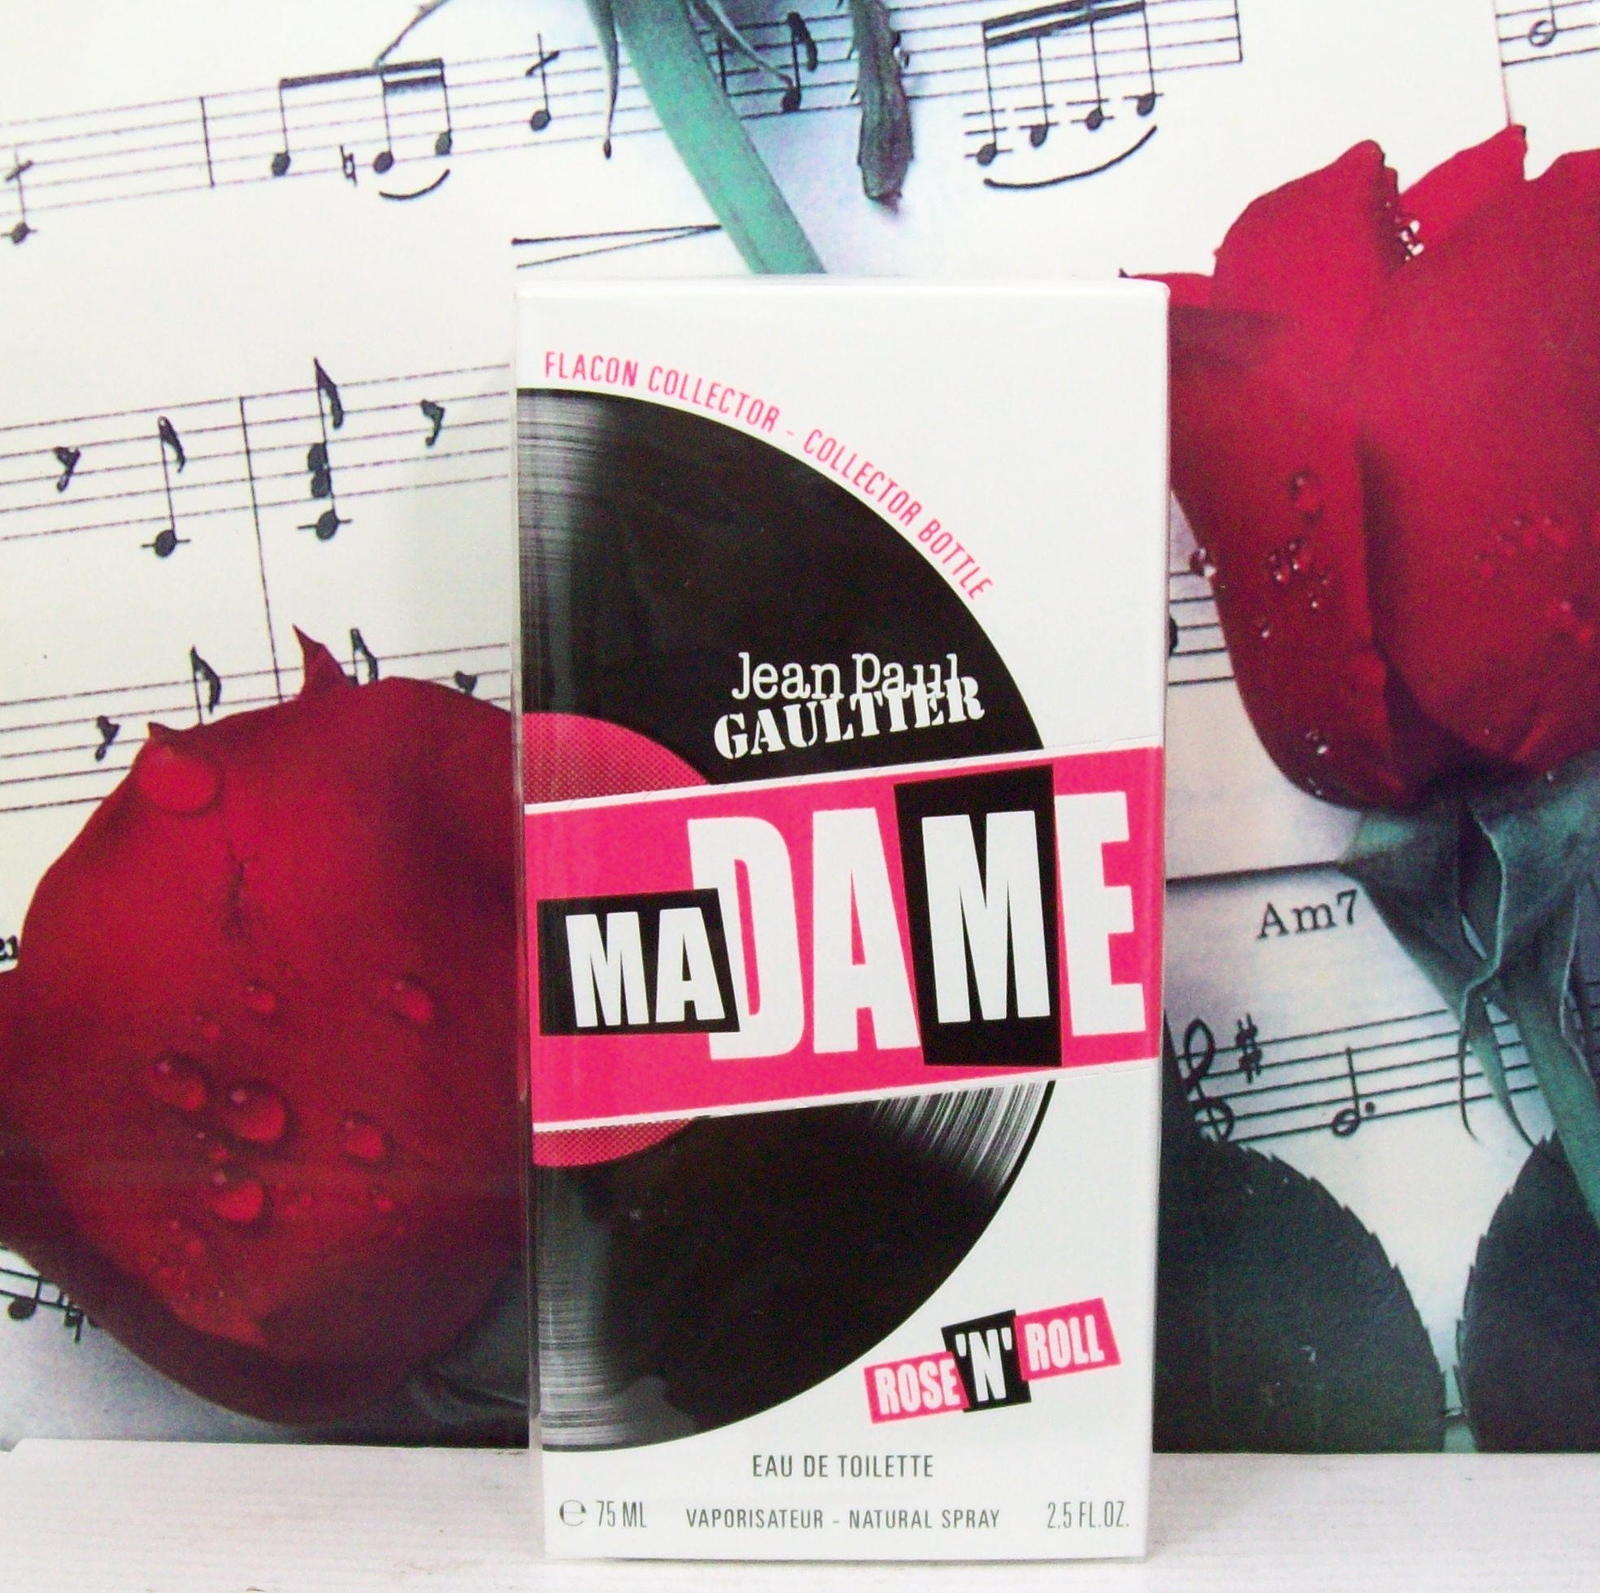 Jean Paul Gaultier Madame Rose N Roll EDT Spray 2.5 FL. OZ. - $139.99